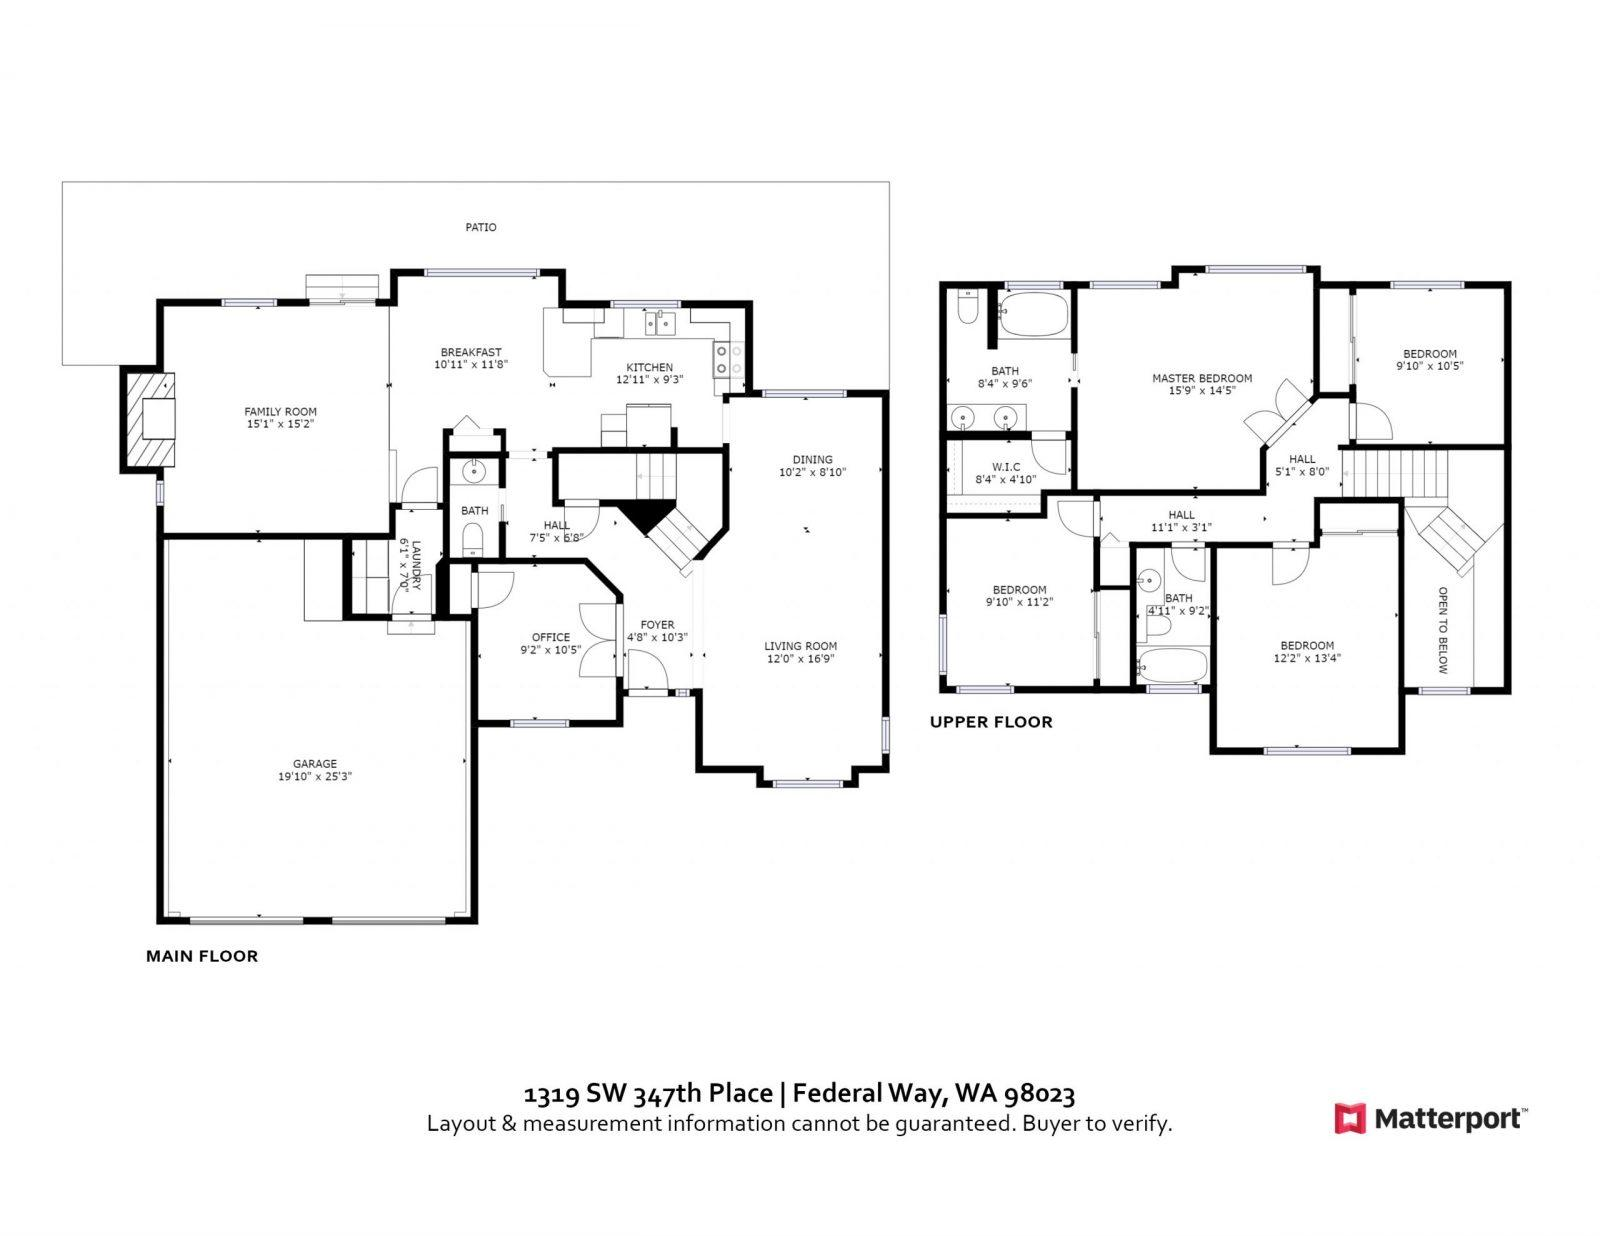 FLOOR PLAN: 1319 SW 347th Place, Federal Way WA 98023